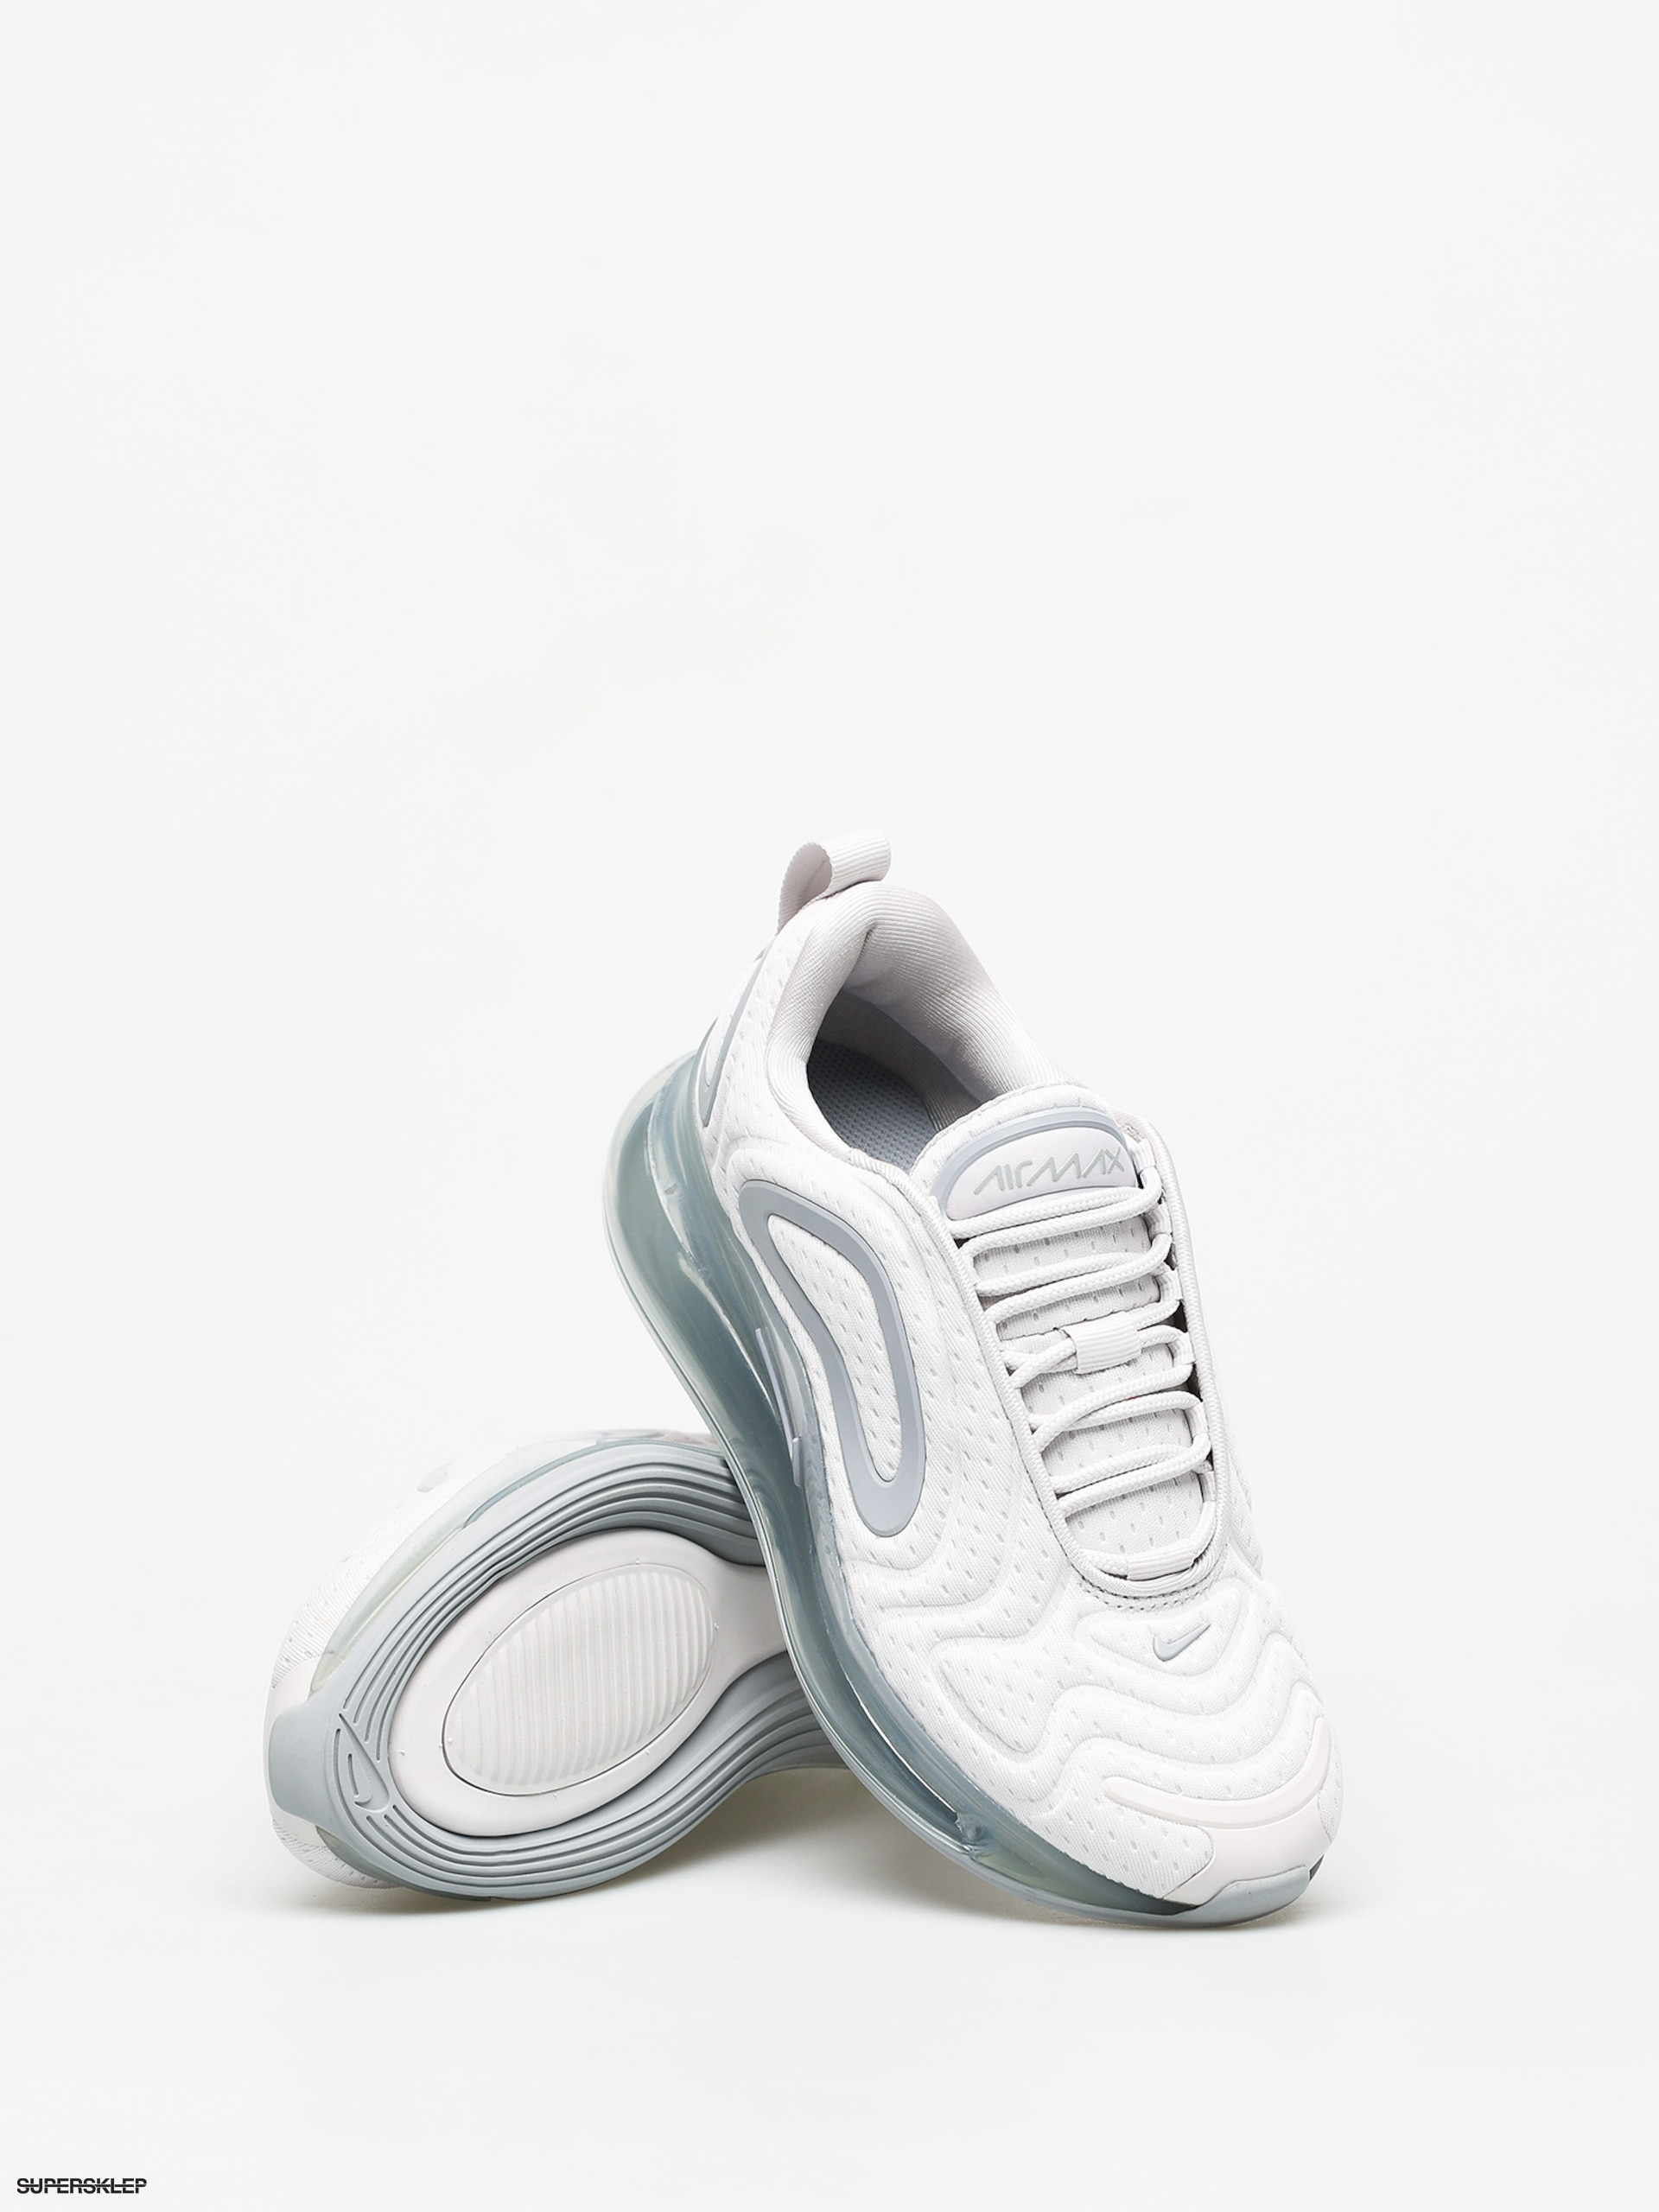 Sneakers Buty Nike Air Max 720 white white mtlc platinum